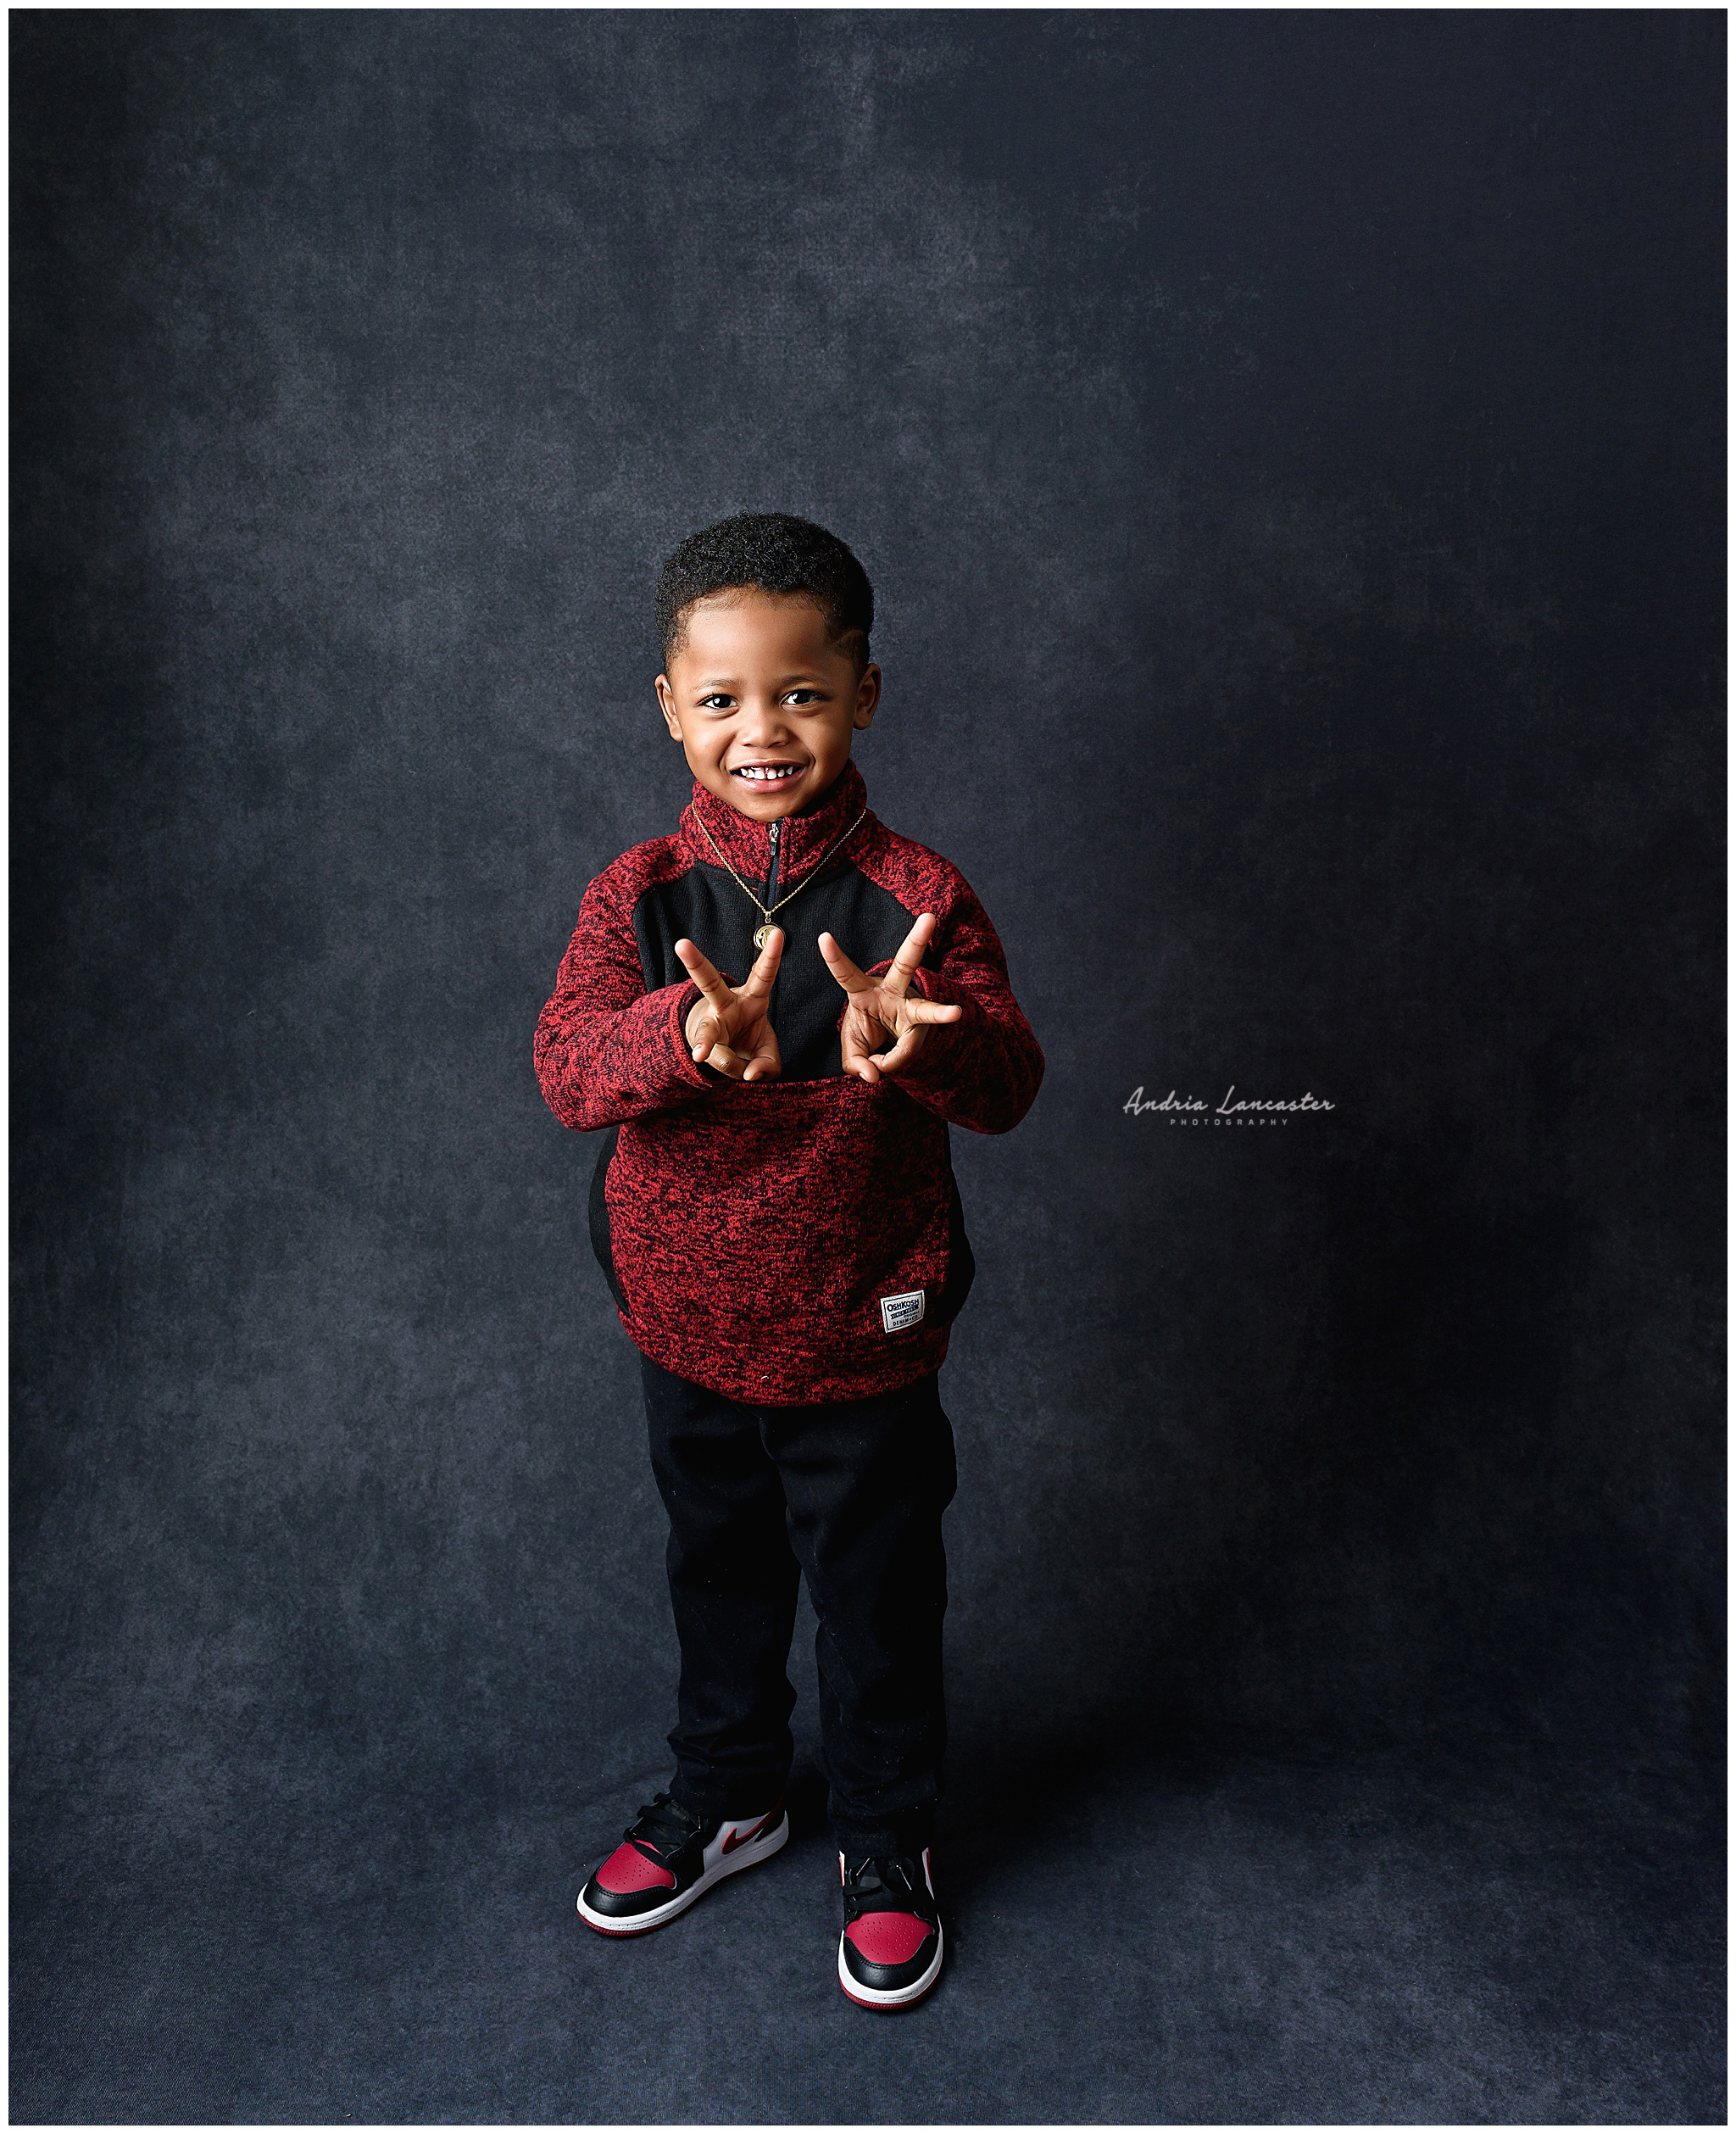 Boy holding up 3 fingers on each hand